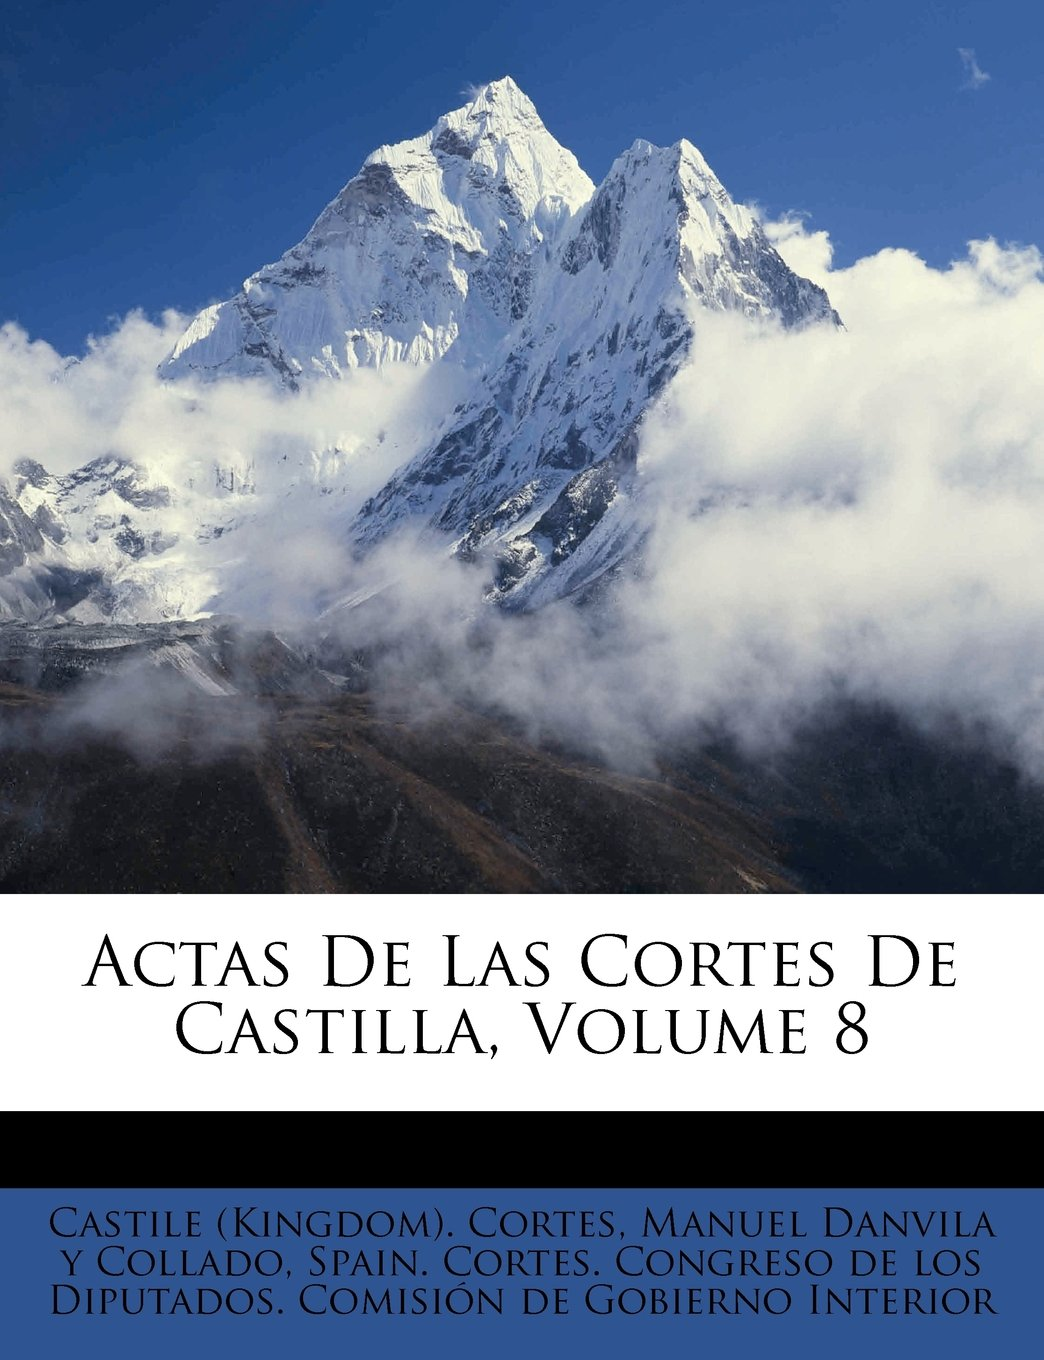 Download Actas De Las Cortes De Castilla, Volume 8 (Spanish Edition) PDF